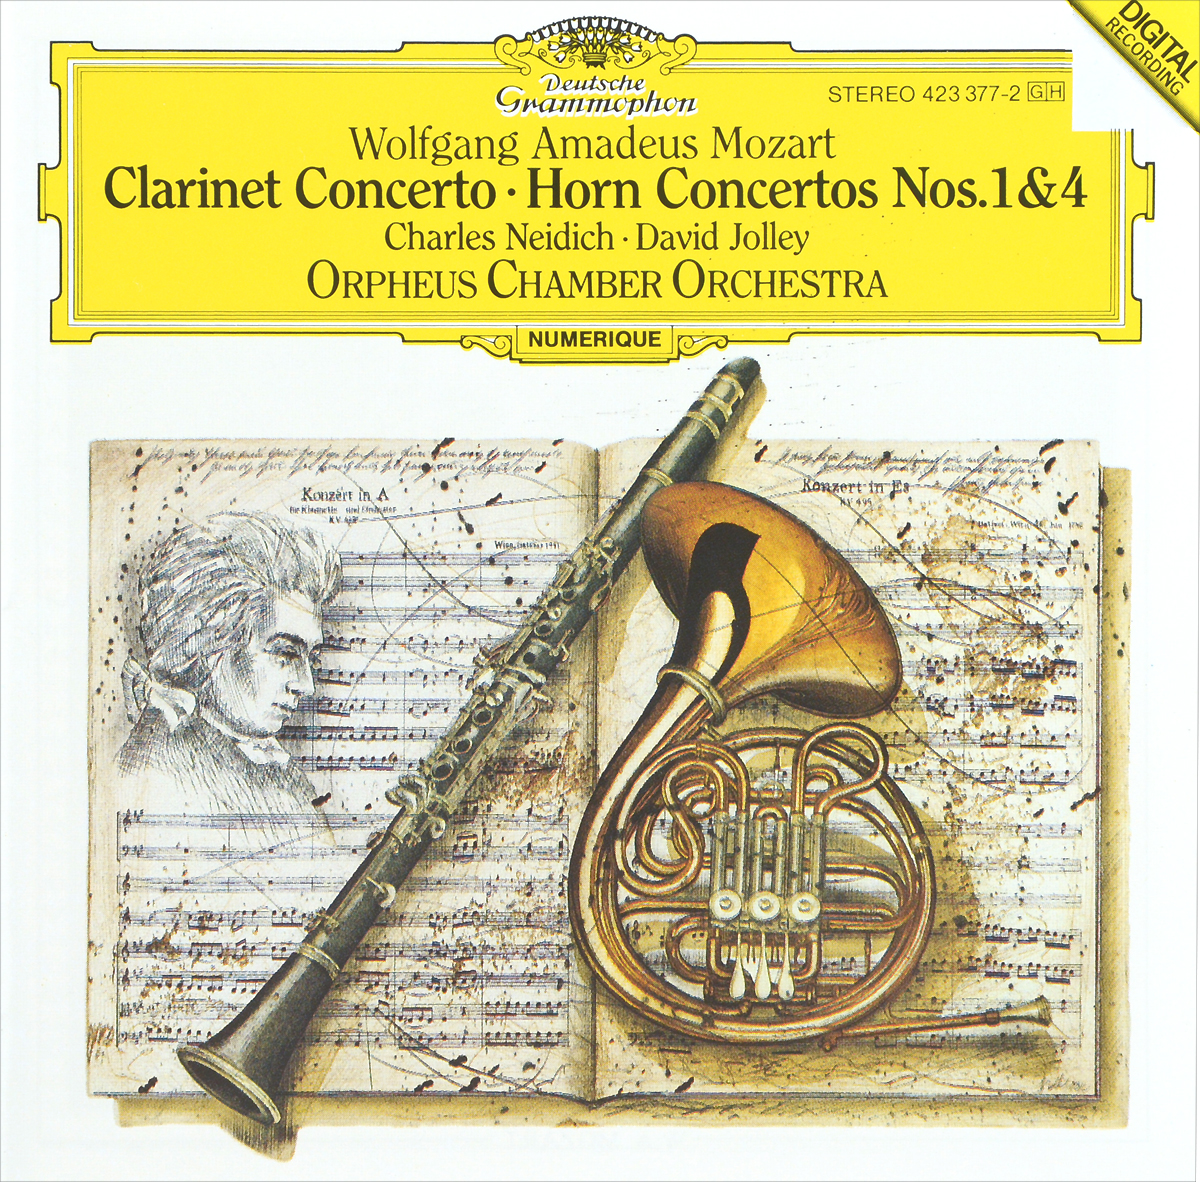 Orpheus Chamber Orchestra Charles Neidich. David Jolley. Wolfgang Amadeus Mozart. Clarinet Concerto / Horn Concertos Nos. 1 & 4 цены